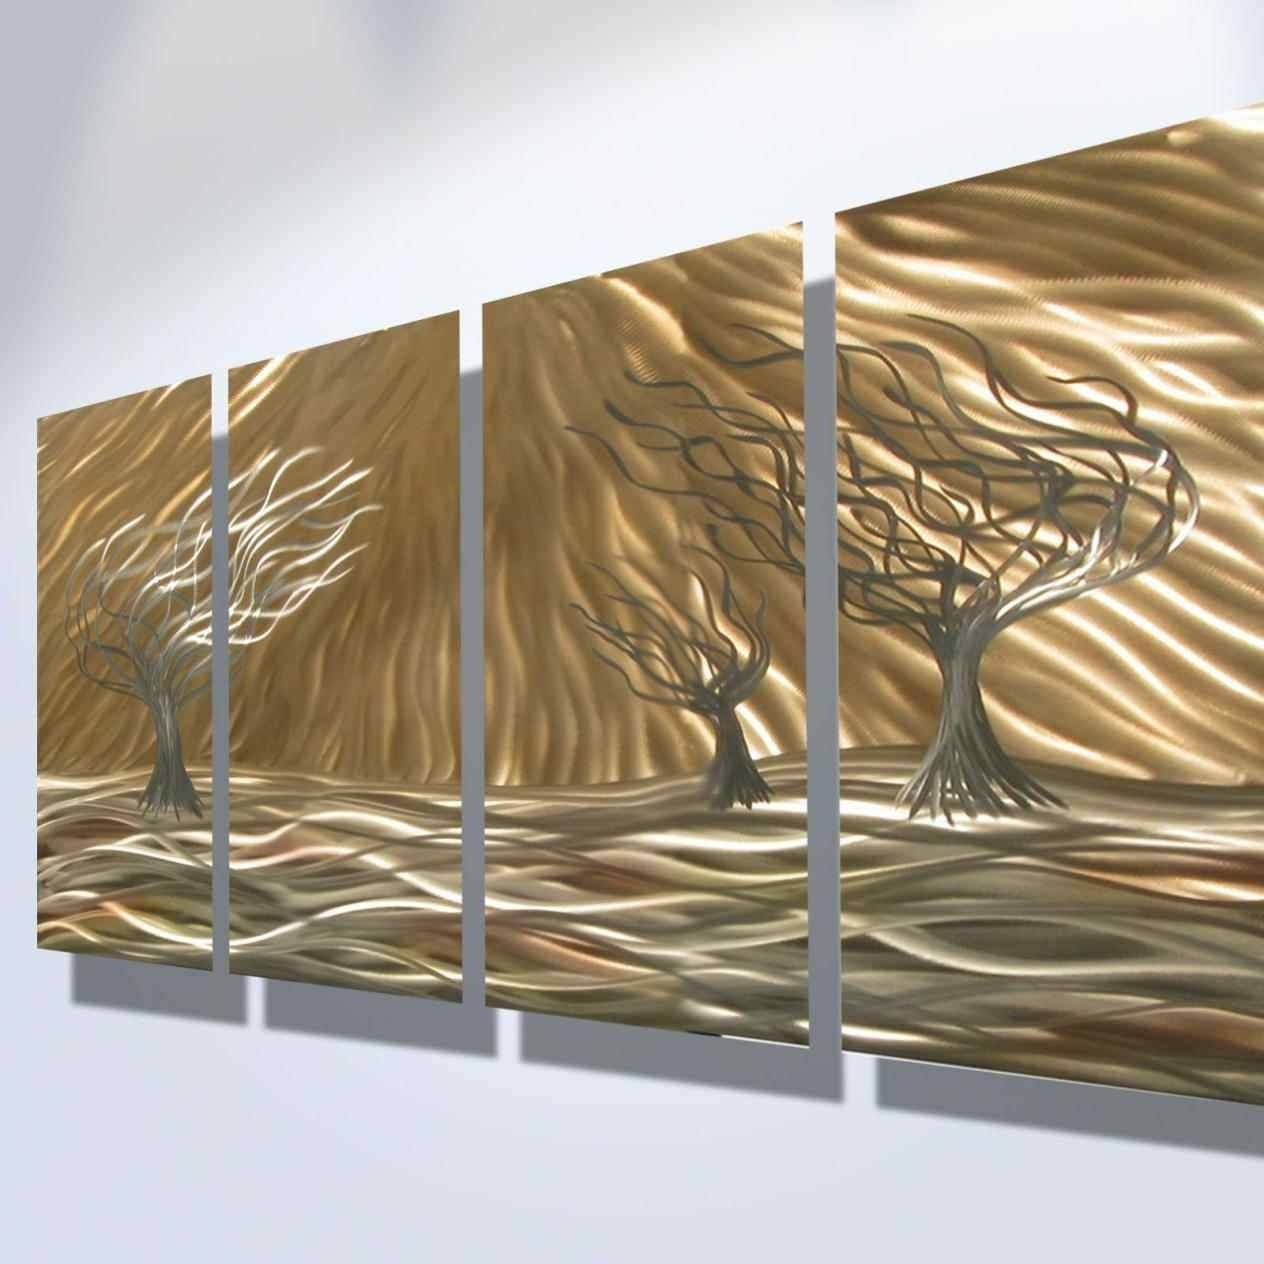 Unusual Metal Wall Art | Home Interior Decor regarding Most Recent Unusual Metal Wall Art